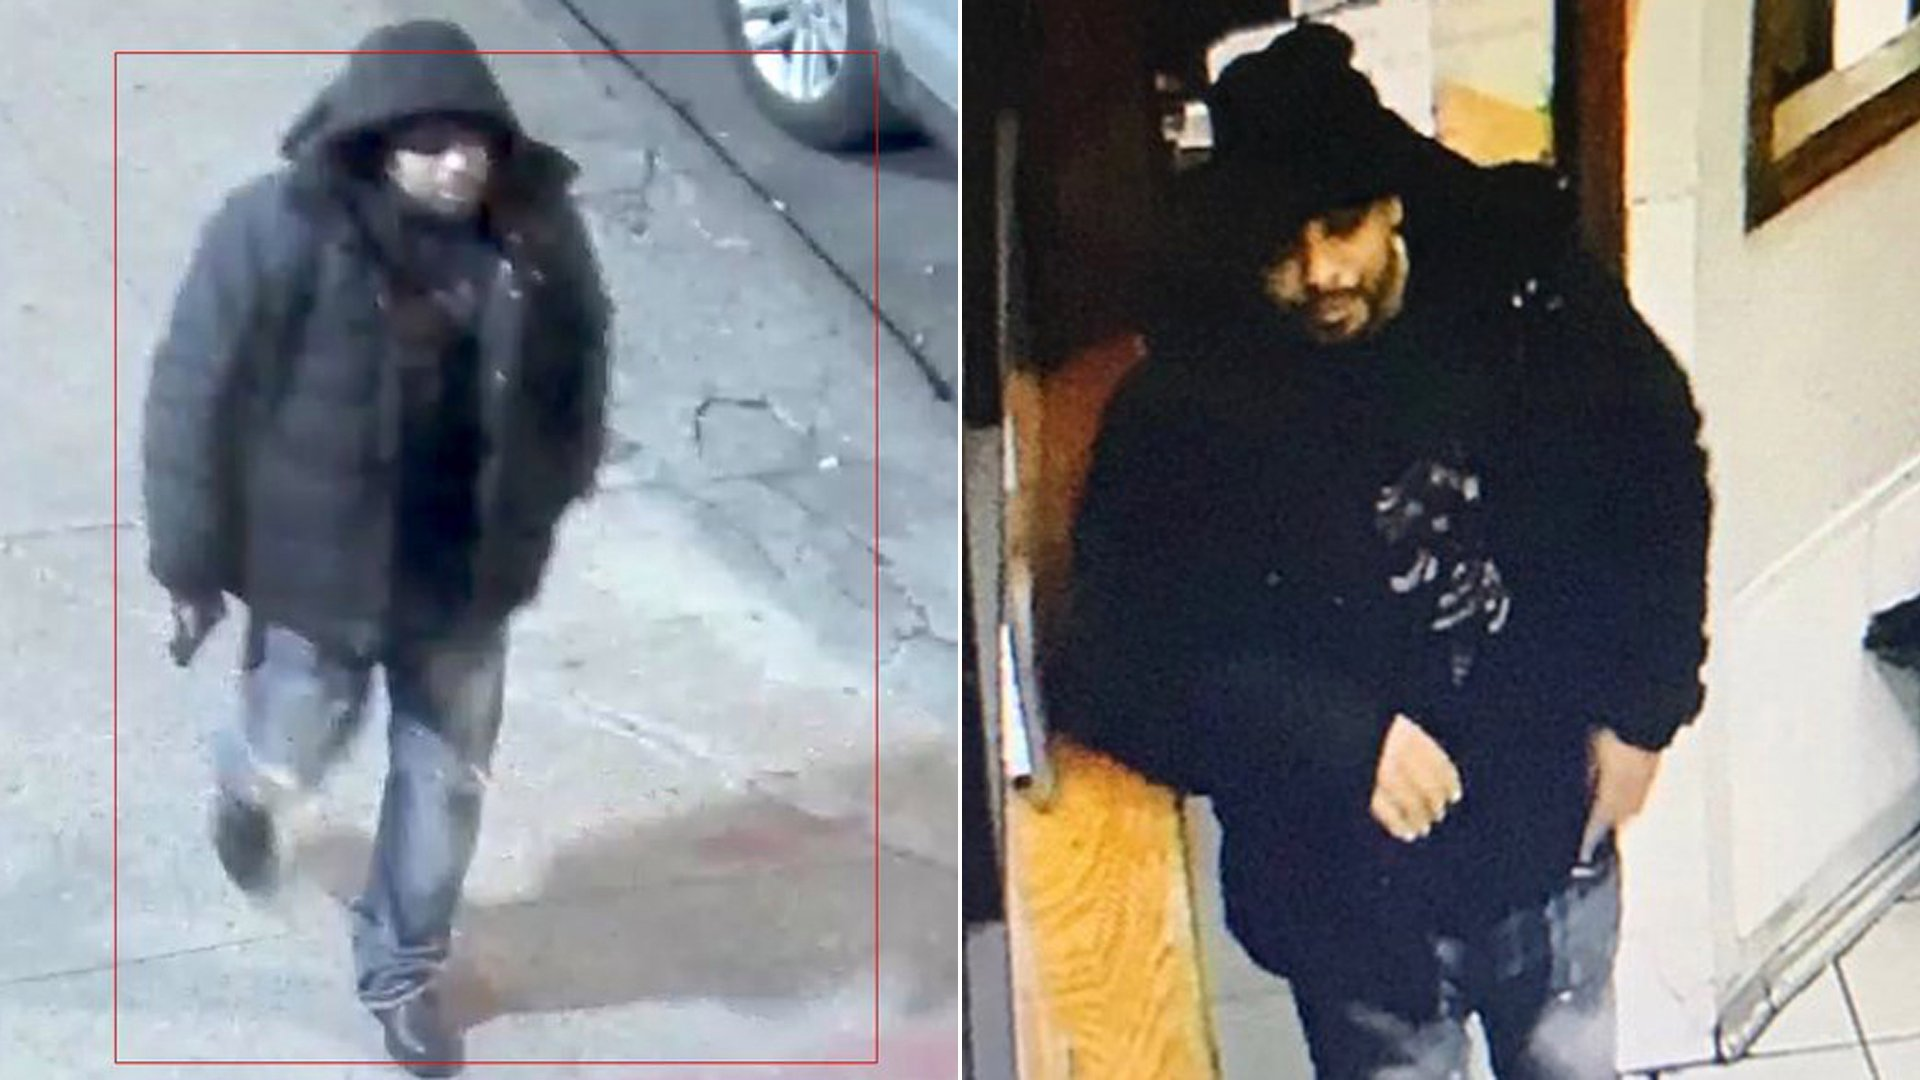 Investigators released photos of a man believed responsible for the ambush attacks of two New York police officers within 12 hours on Feb. 8 and Feb. 9, 2020. (Credit: New York Police Department)